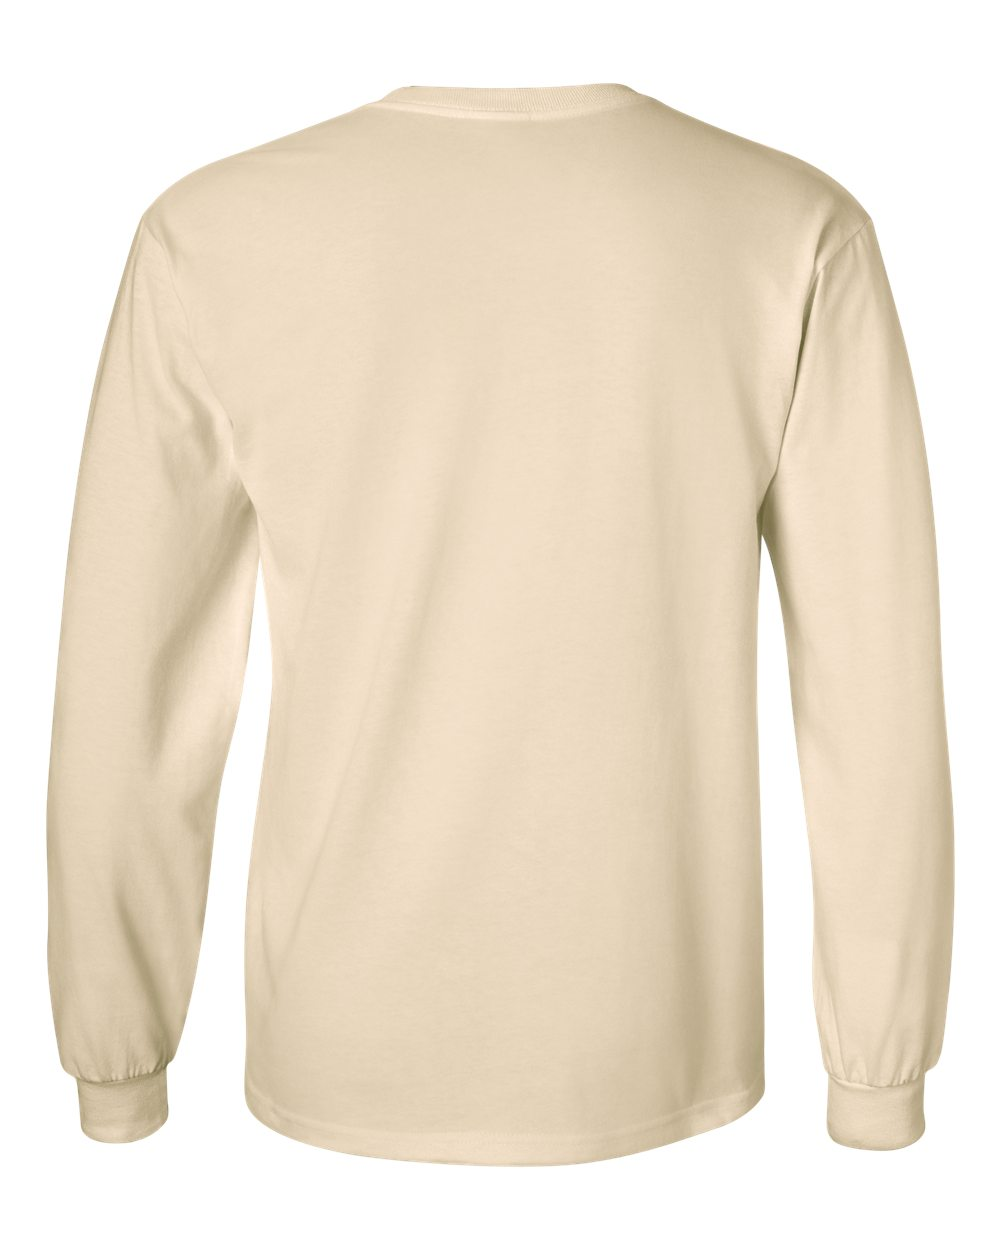 Gildan-Men-039-s-Ultra-Cotton-6-oz-Long-Sleeve-T-Shirt-G240-S-5XL thumbnail 64